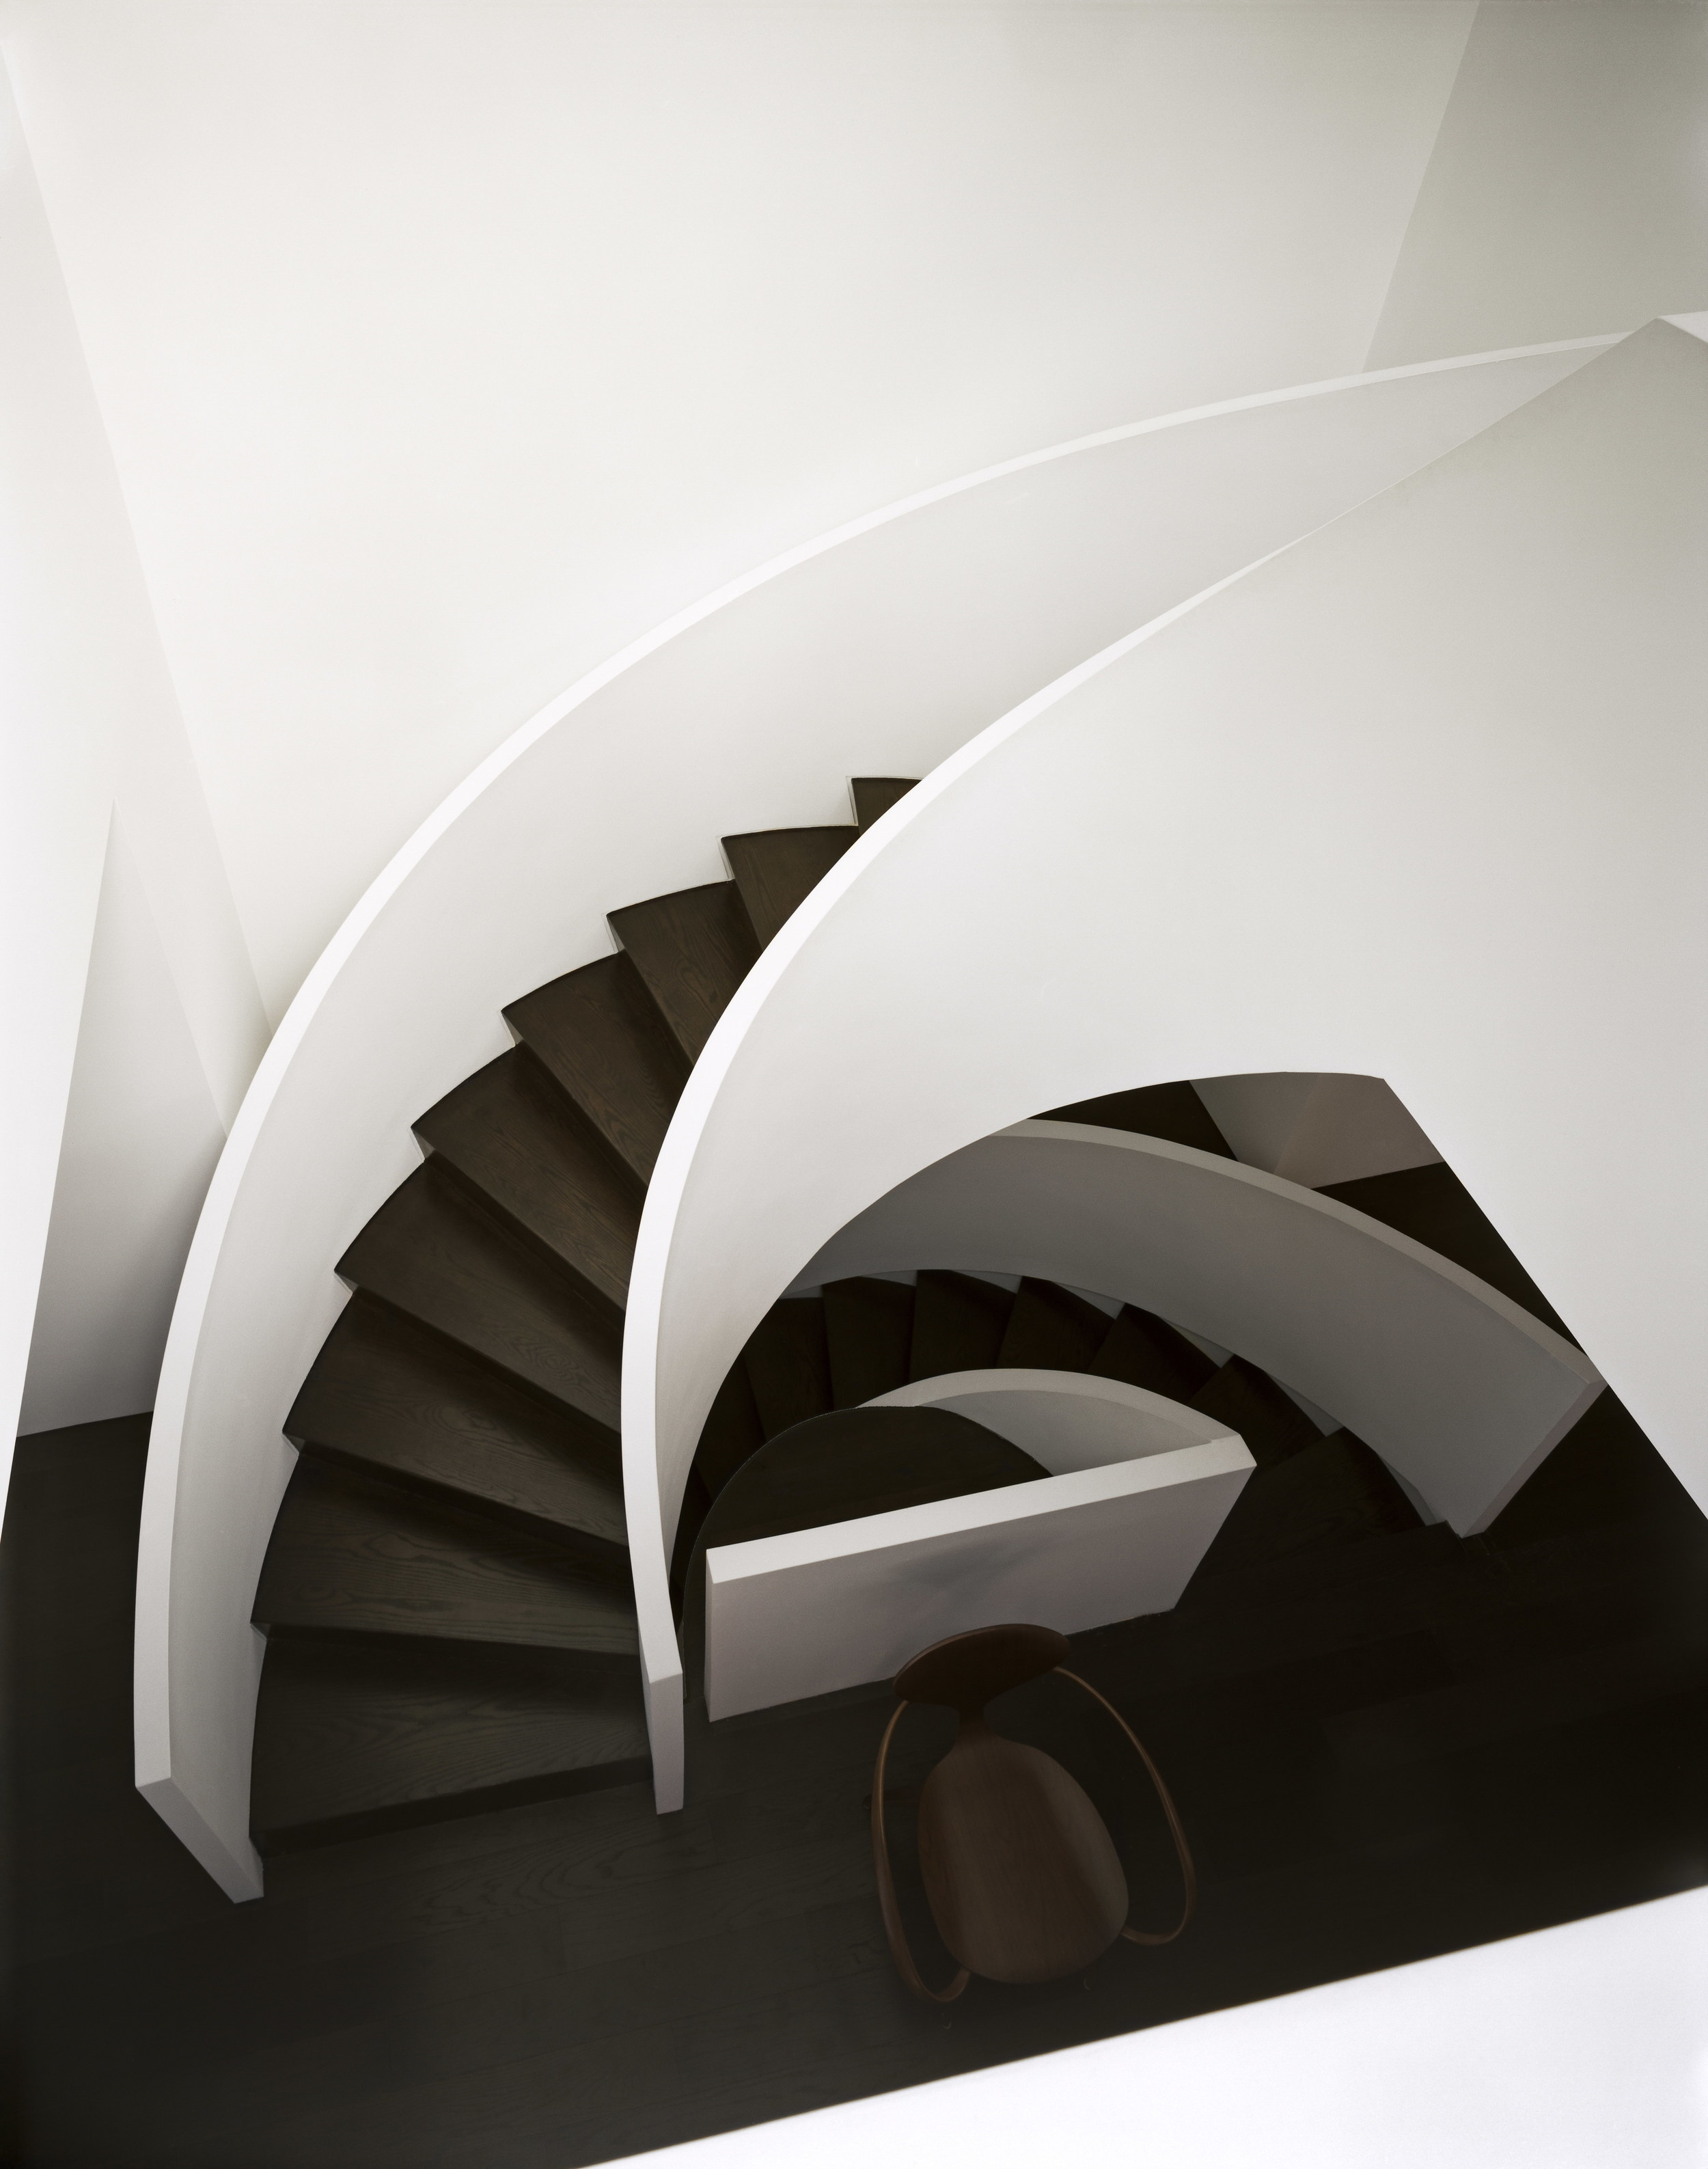 005. 101 RUSSELL HILL ROAD -  STAIR ABOVE.jpg